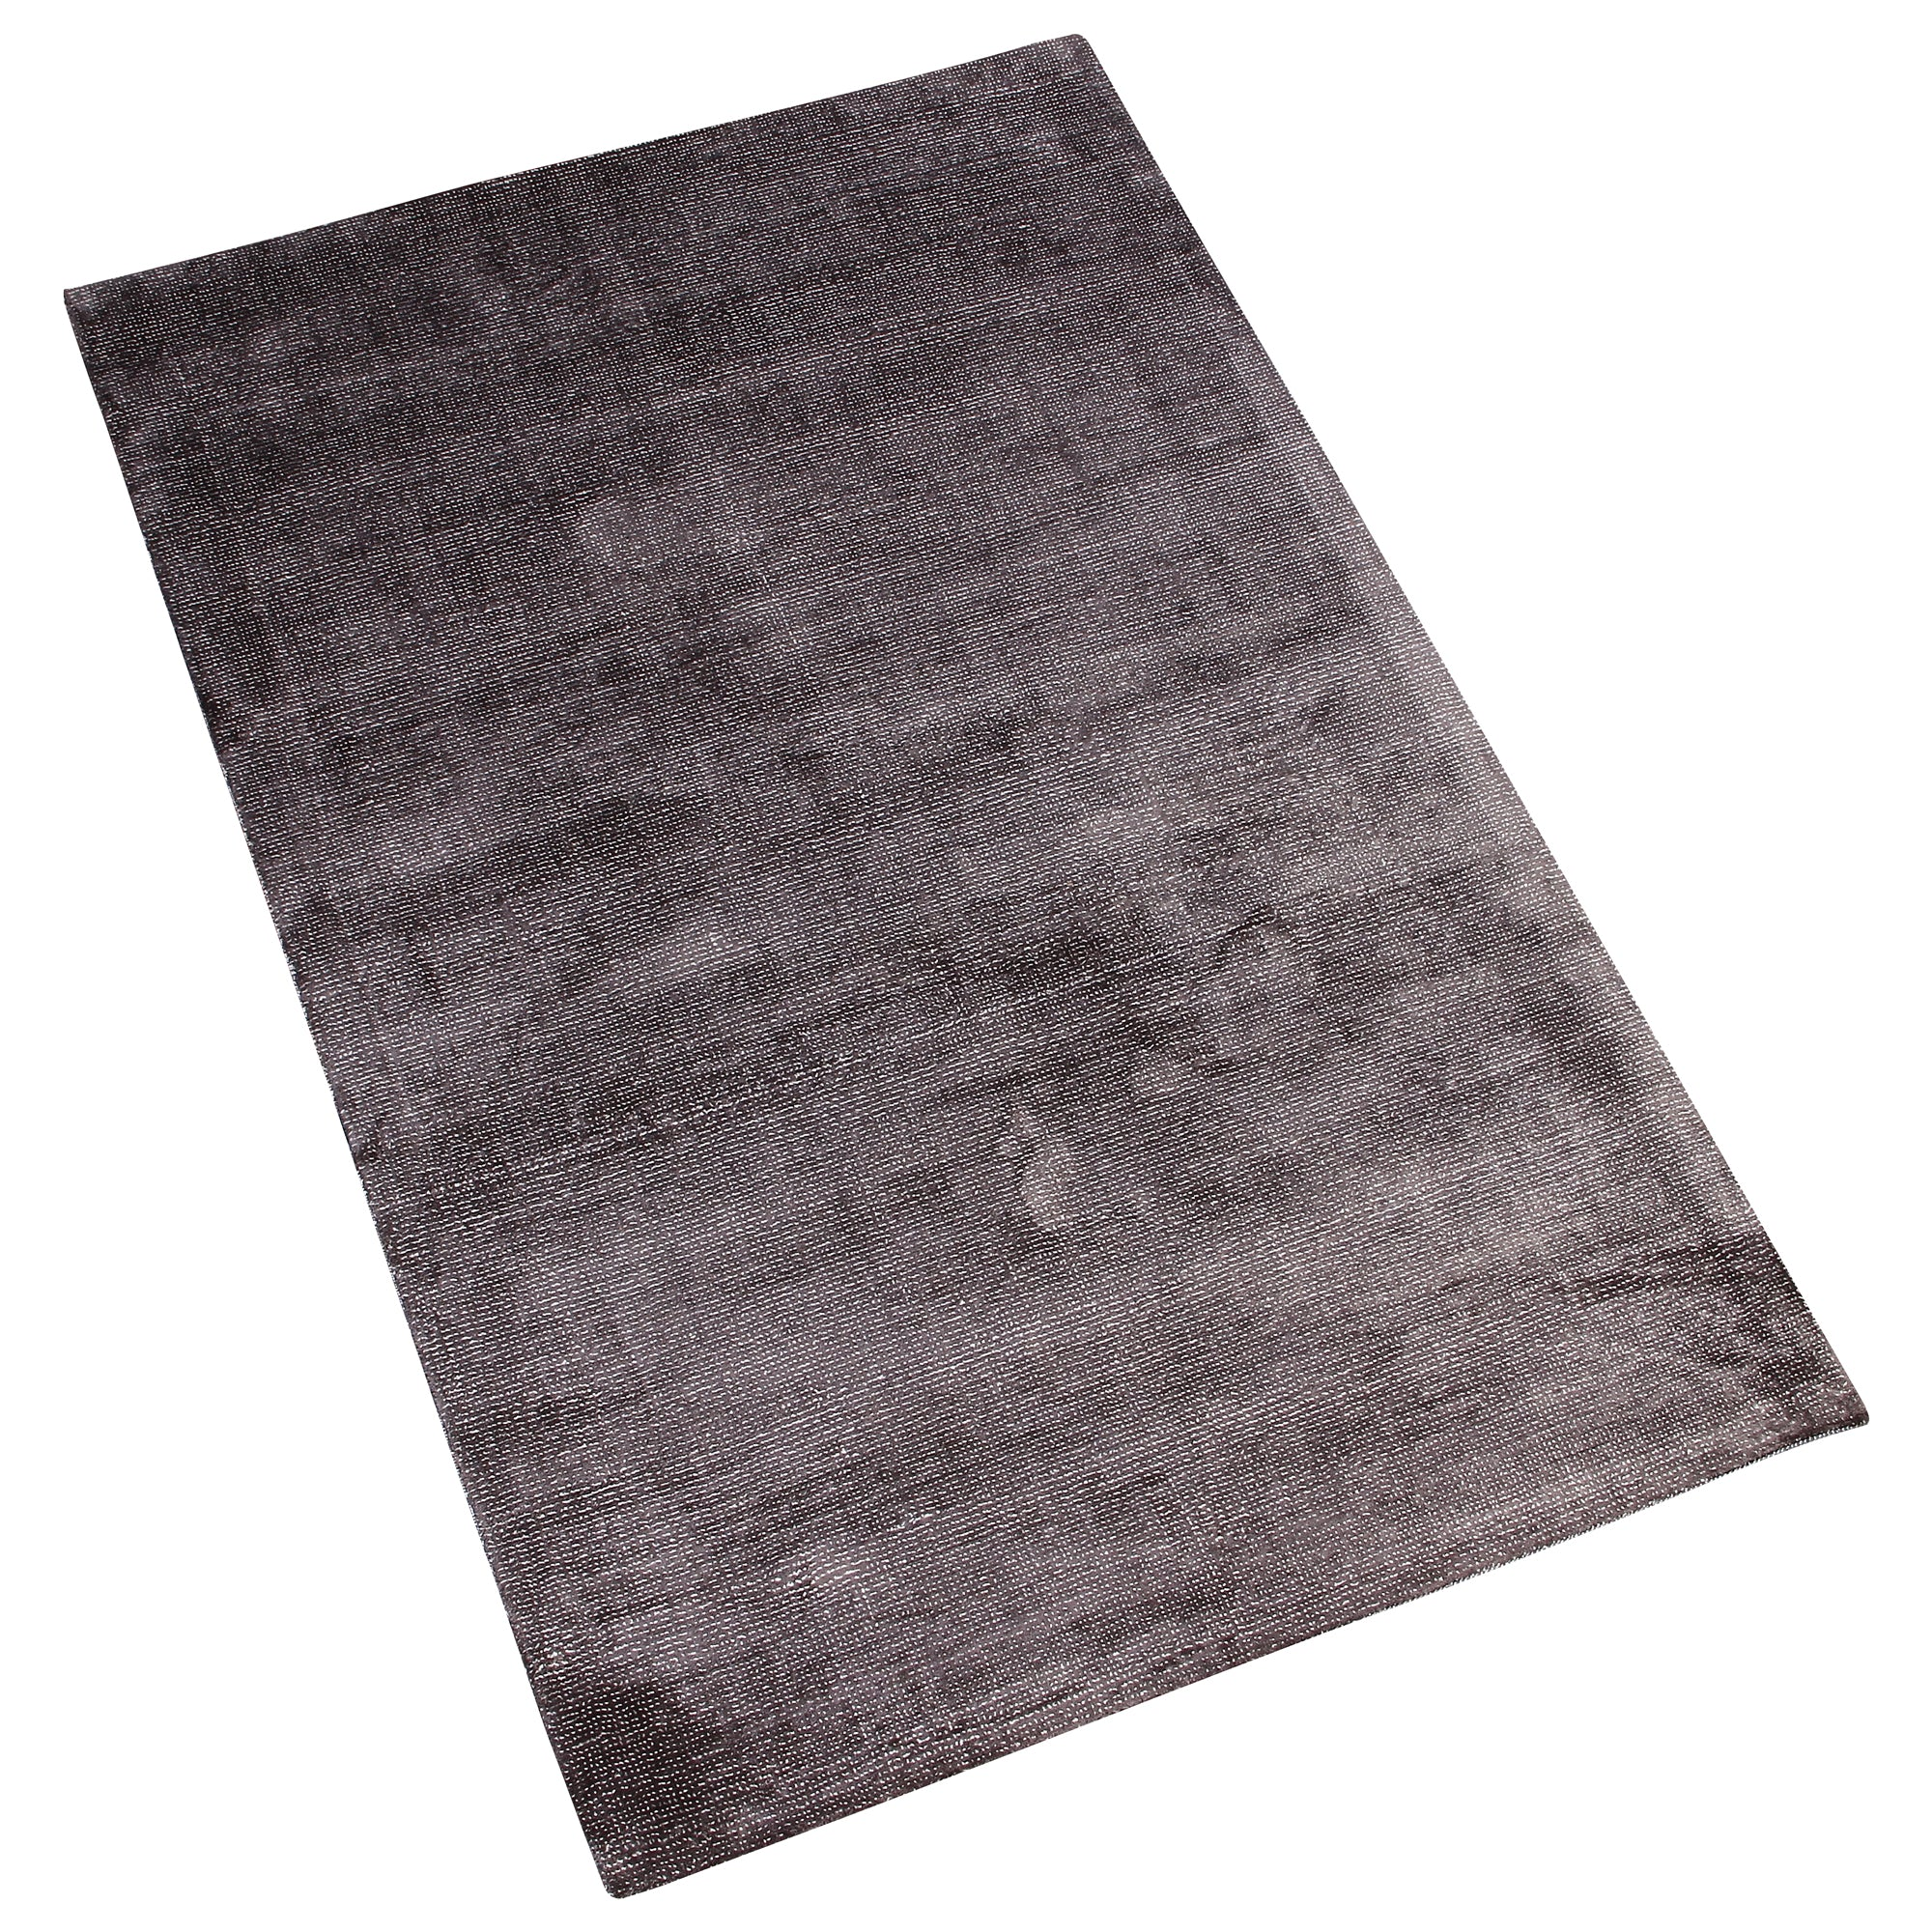 CHARCOAL GREY SOLID HAND TUFTED RUG